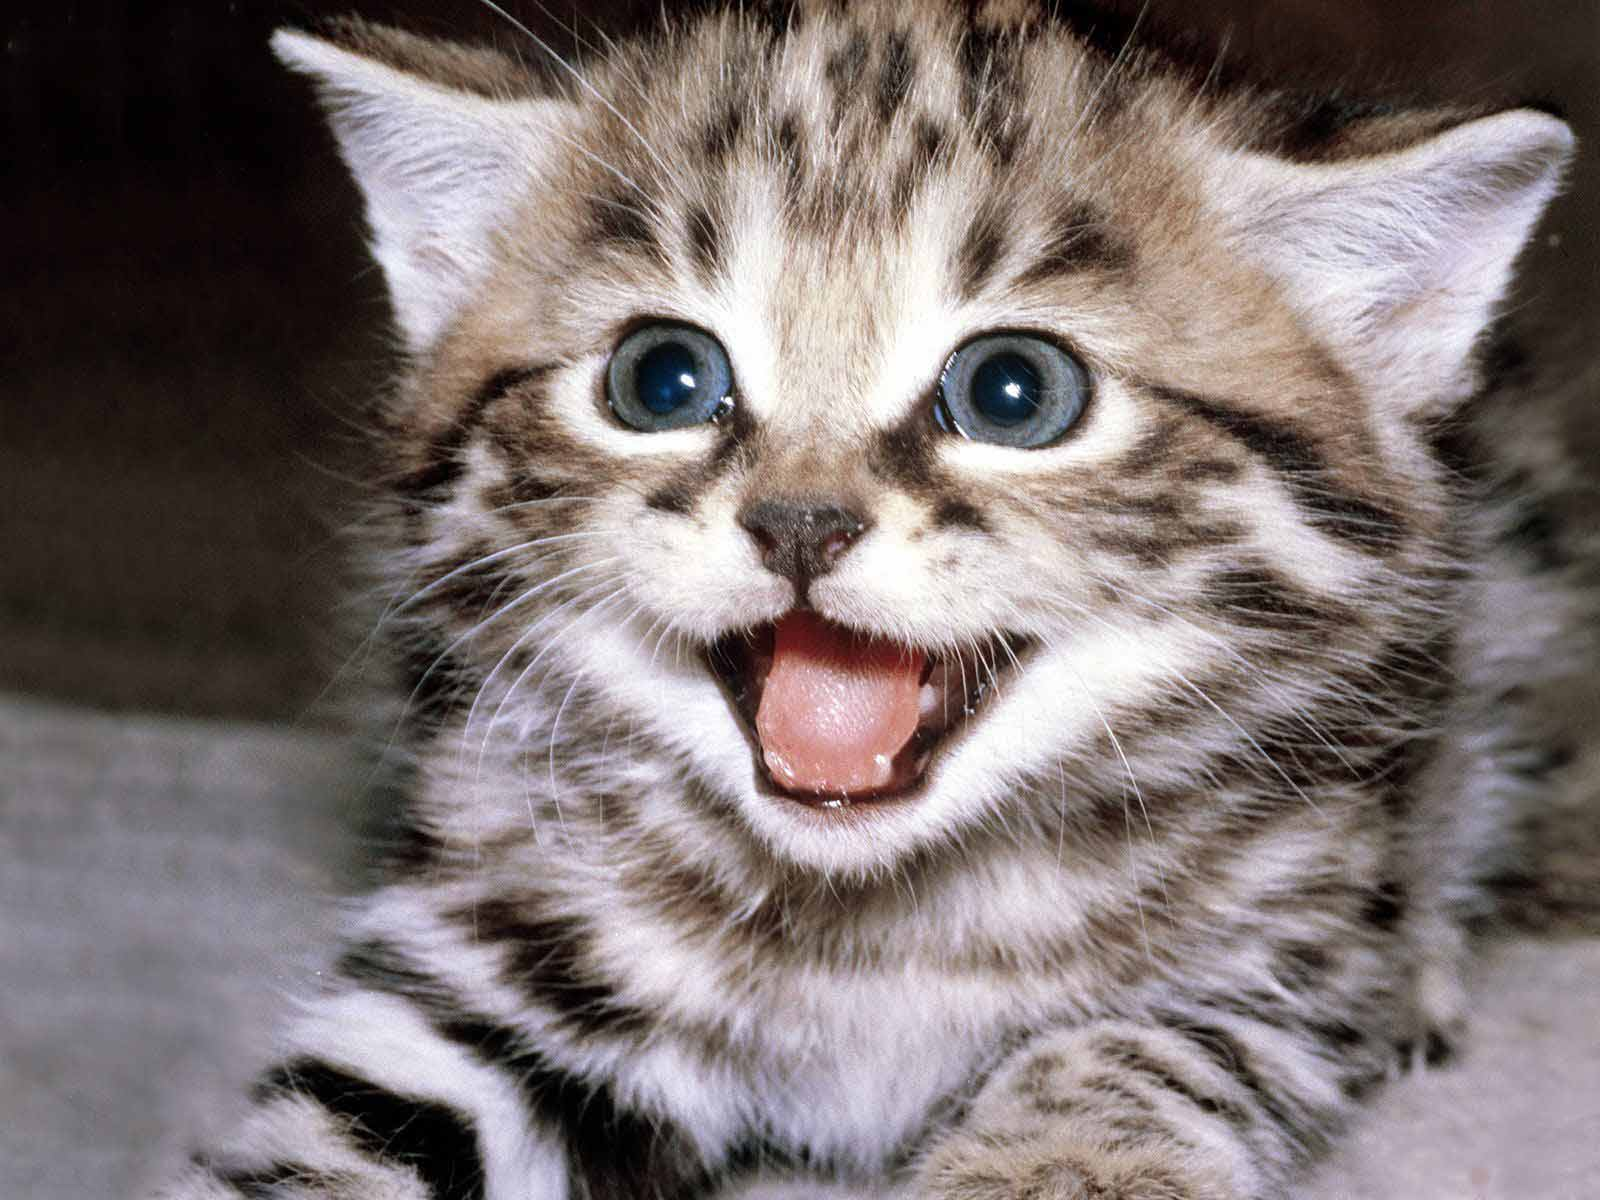 Cat Face Cute Kitten